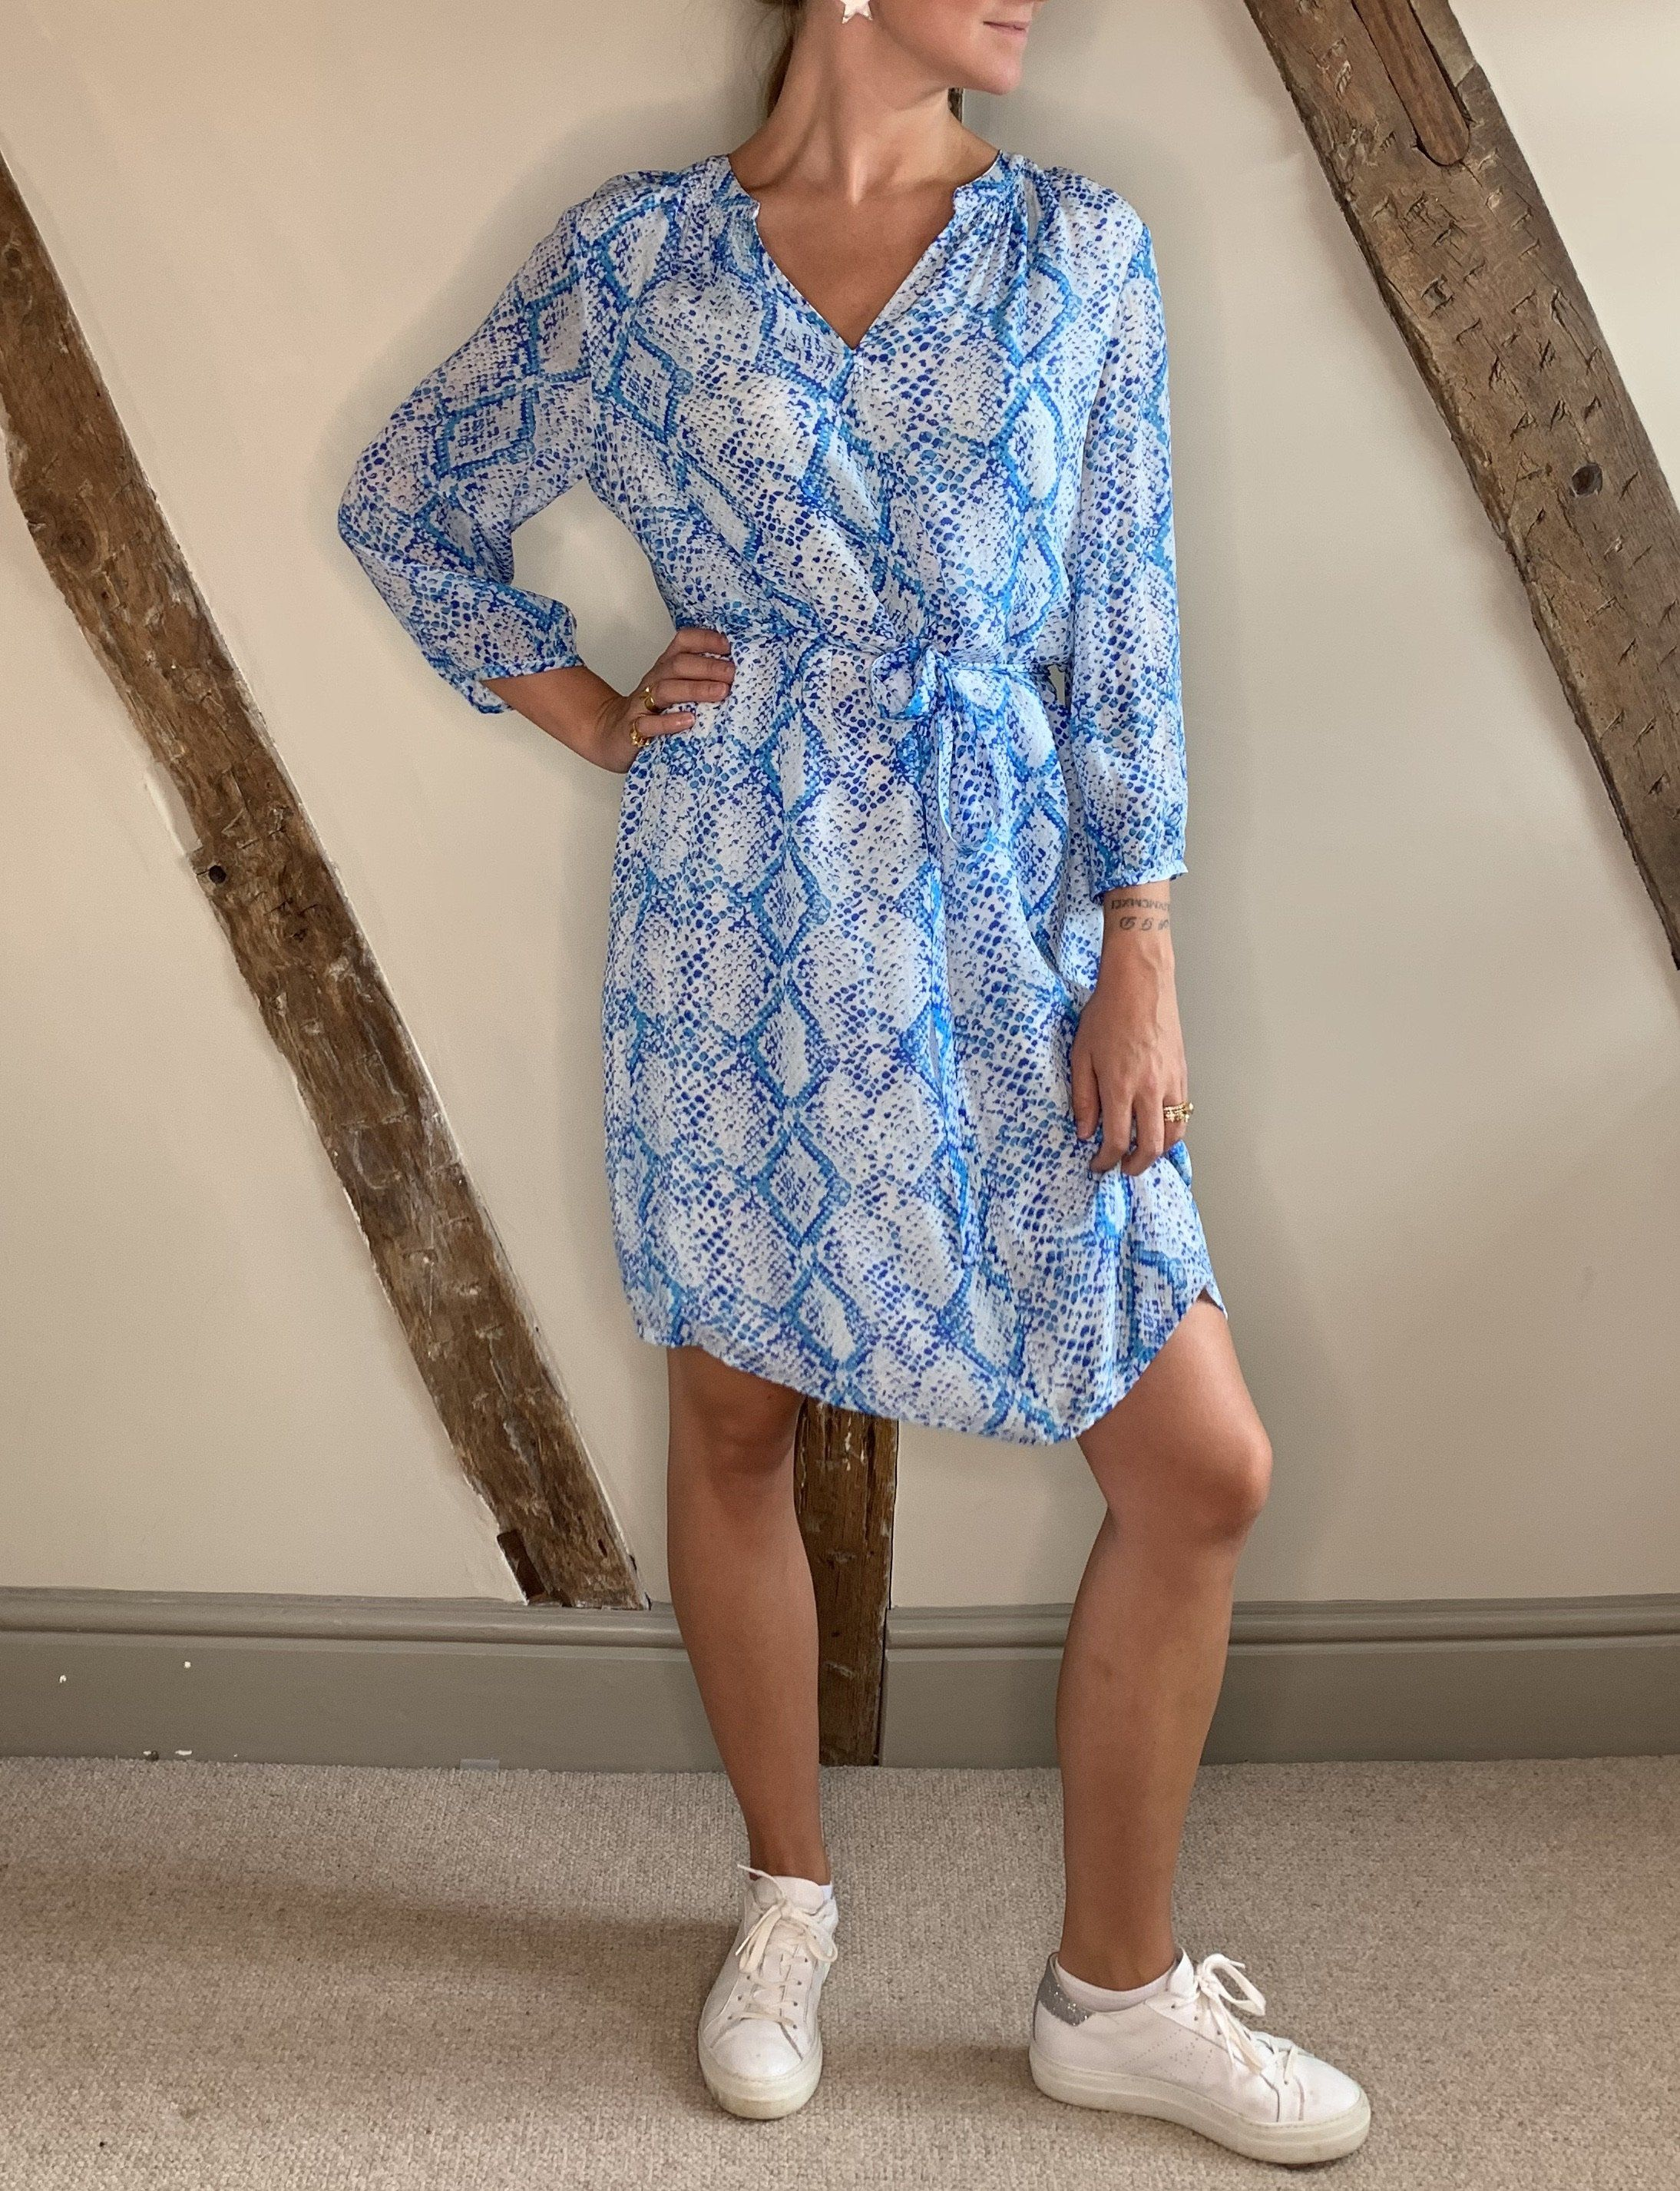 Allie & Grace Blue Snake Dress S